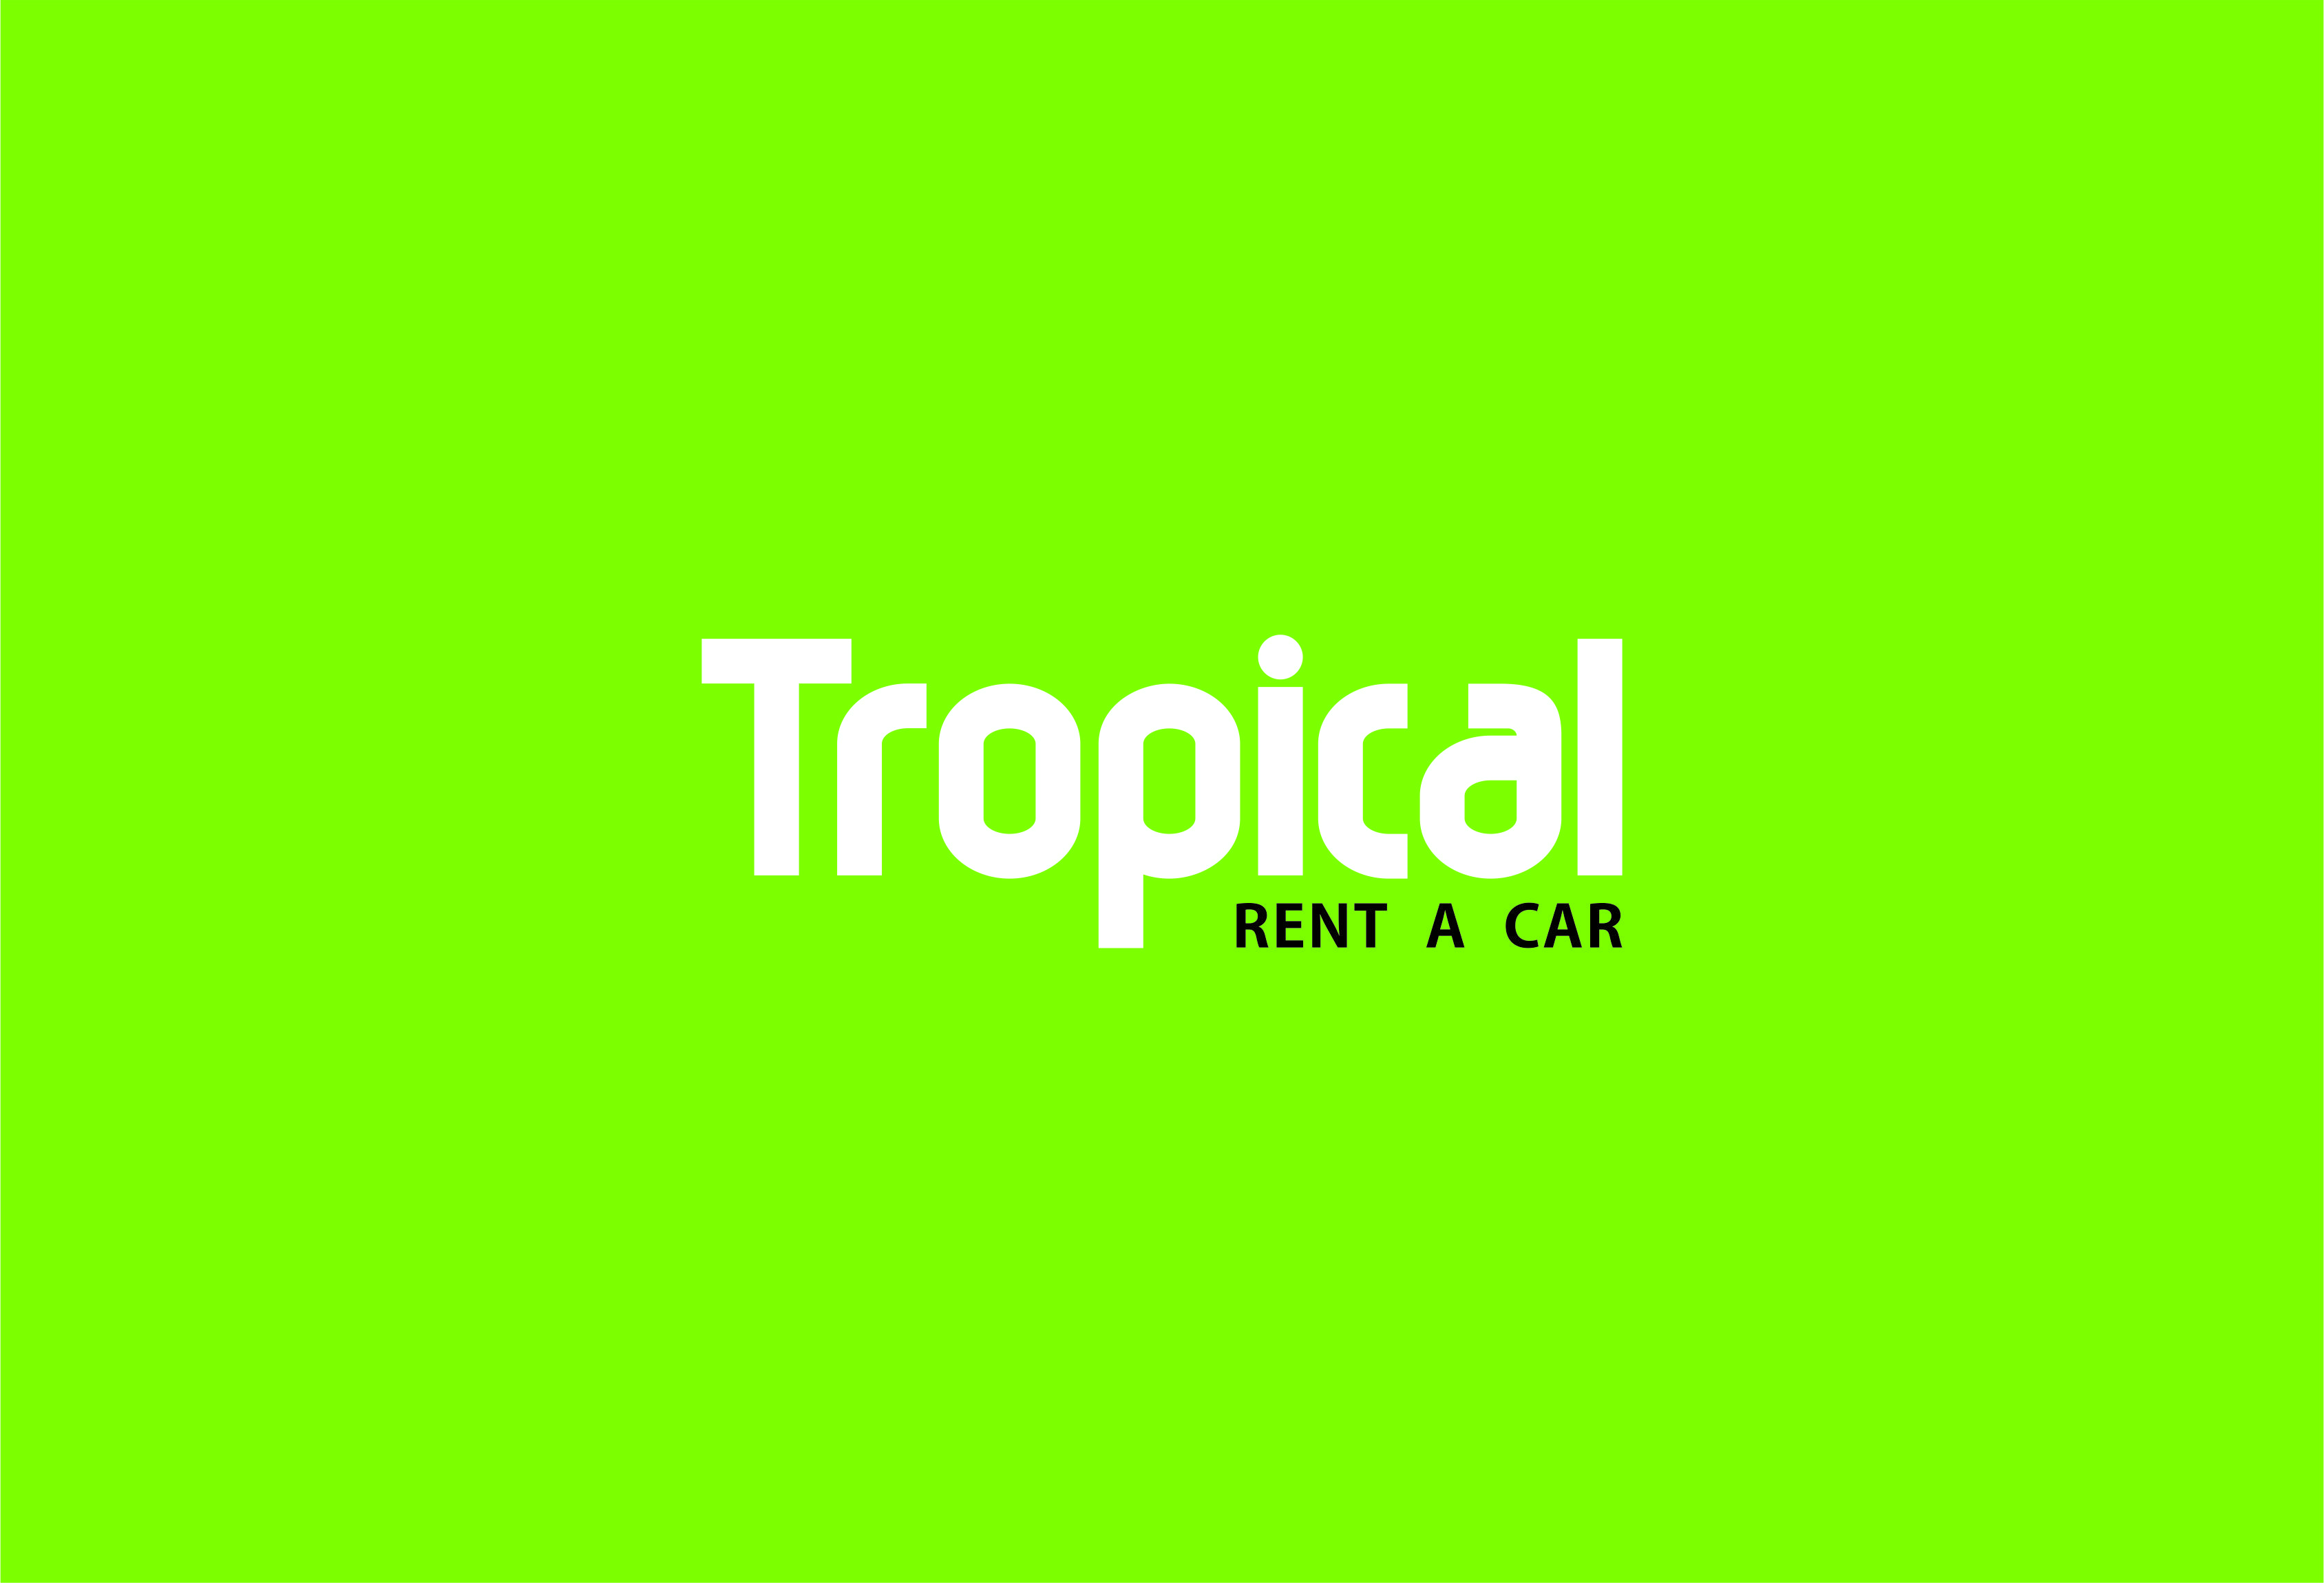 Rent a car Tropical